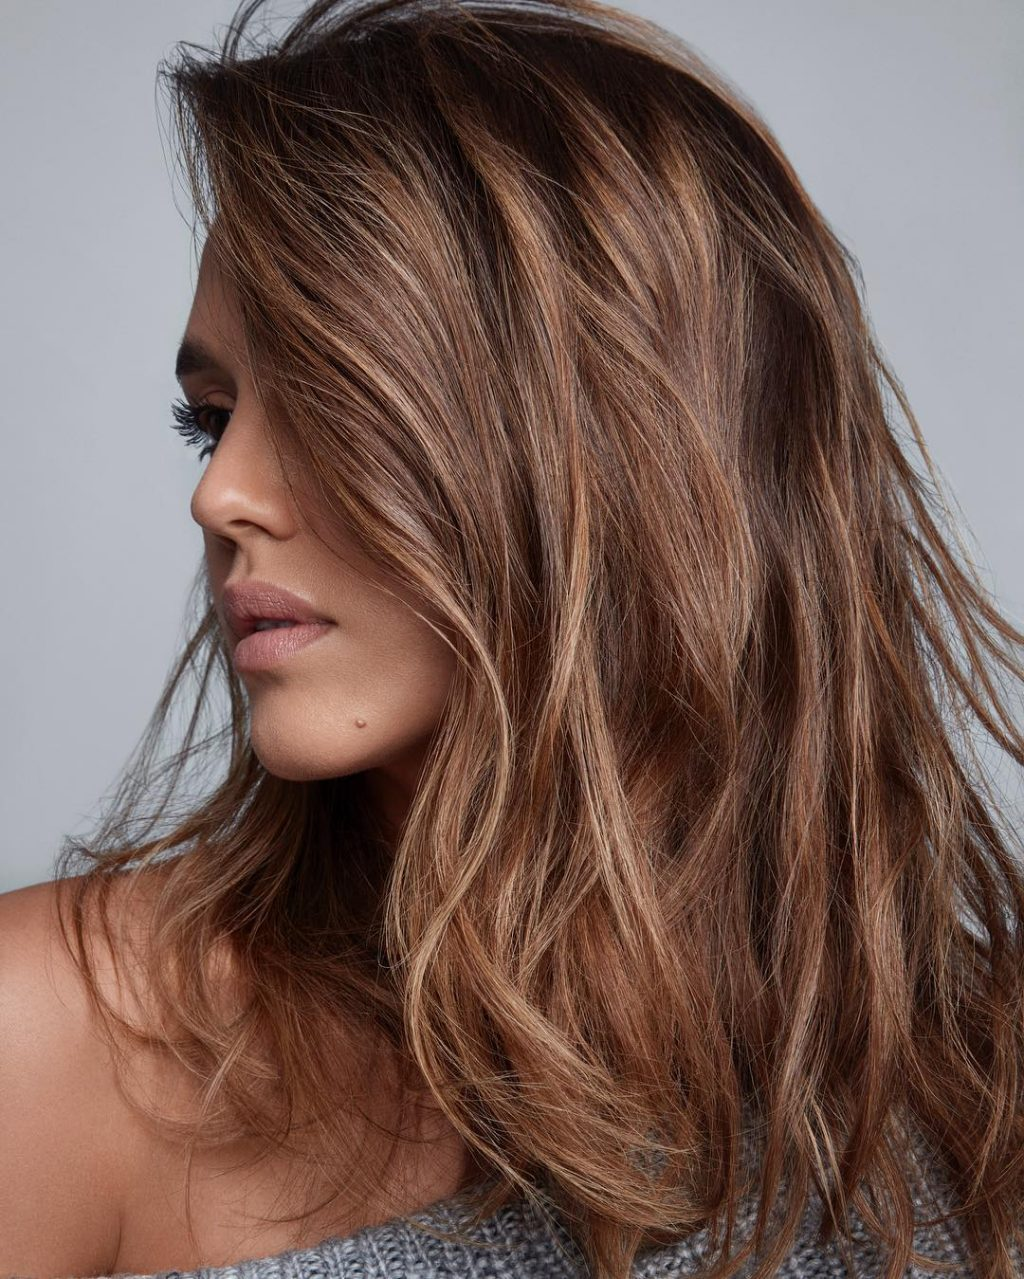 Tiger Eye Hair Is The Hot New Celebrity Hair Trend